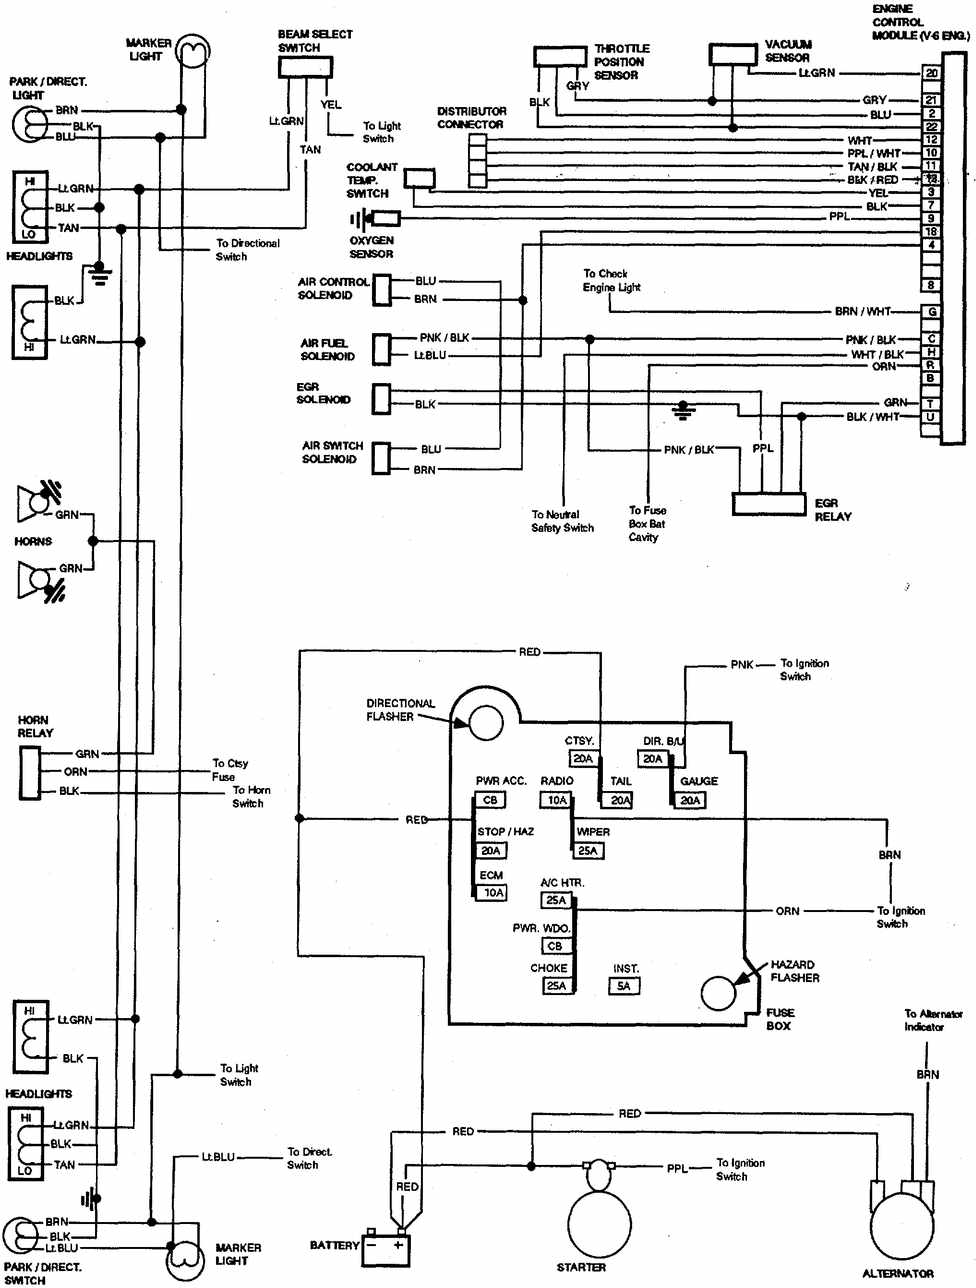 2001 chevy blazer pcm wiring diagram